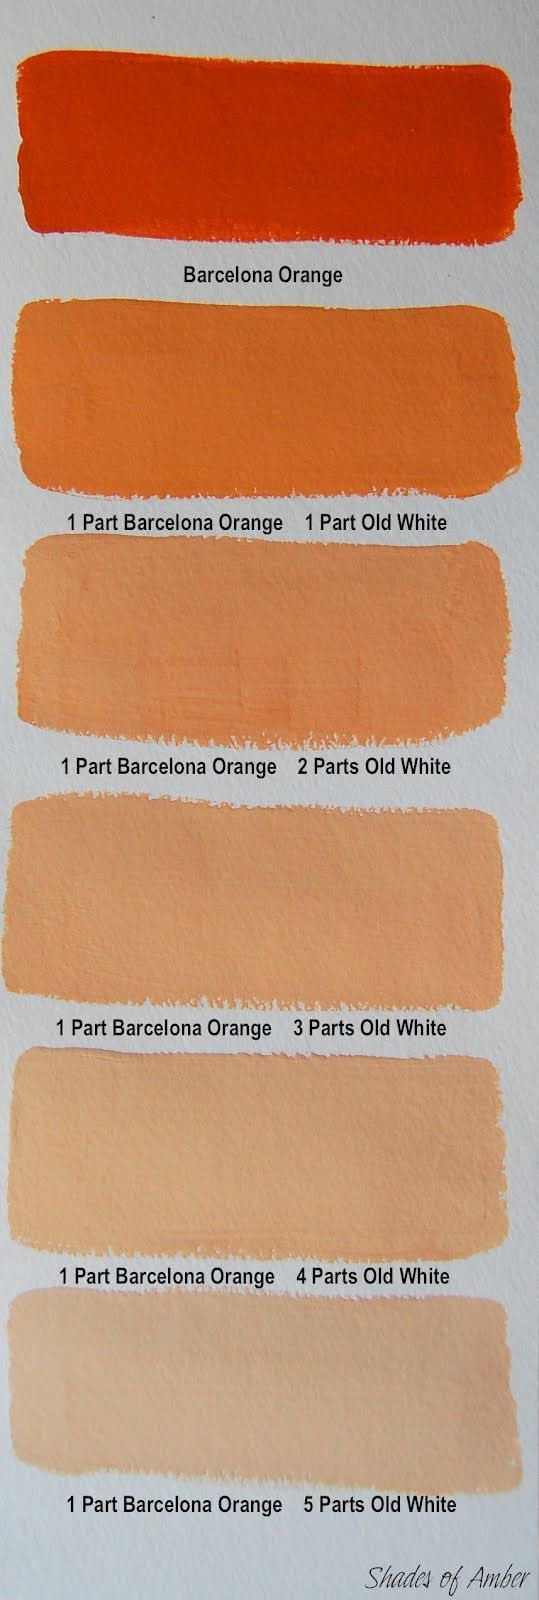 Shades Of Orange Paint Best 15 Best Orange Paint Colors Images On Pinterest  Color Paints Inspiration Design